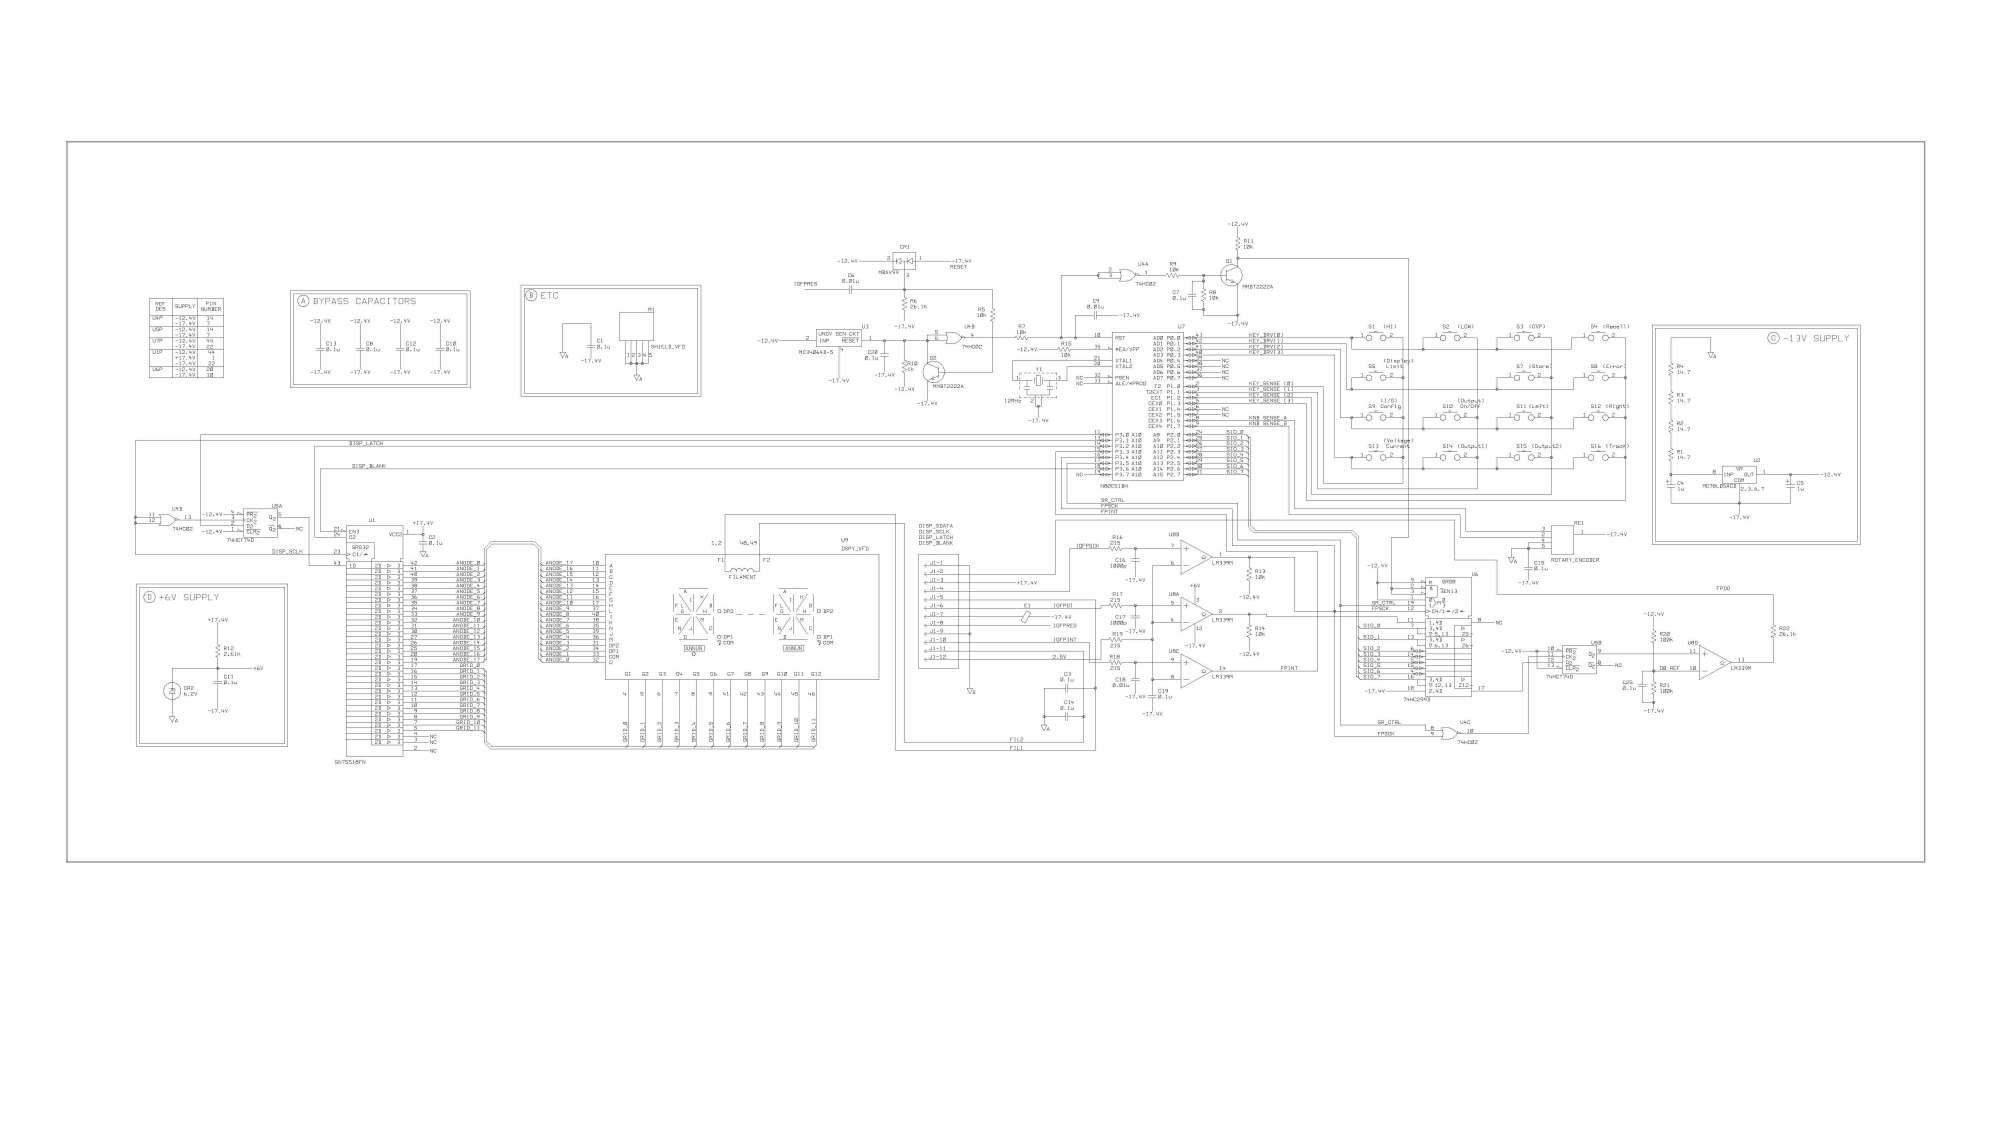 hight resolution of display board schematics extracted from service manual pg